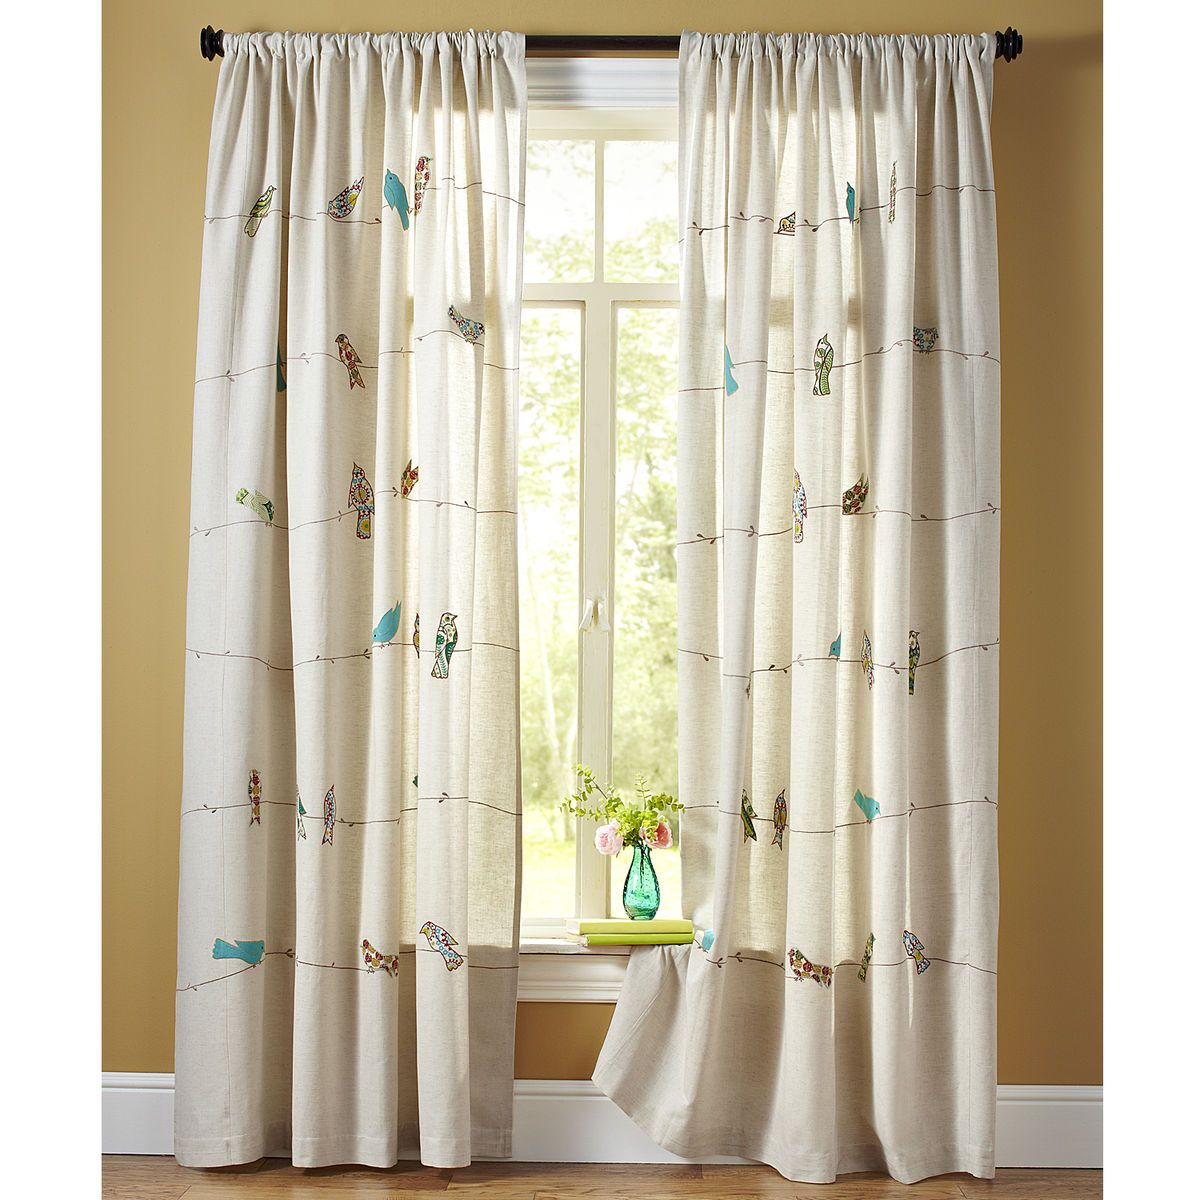 Applique Birds On A Wire Curtain My Feathered Nest Bird Curtains Curtains Kids Room Curtains